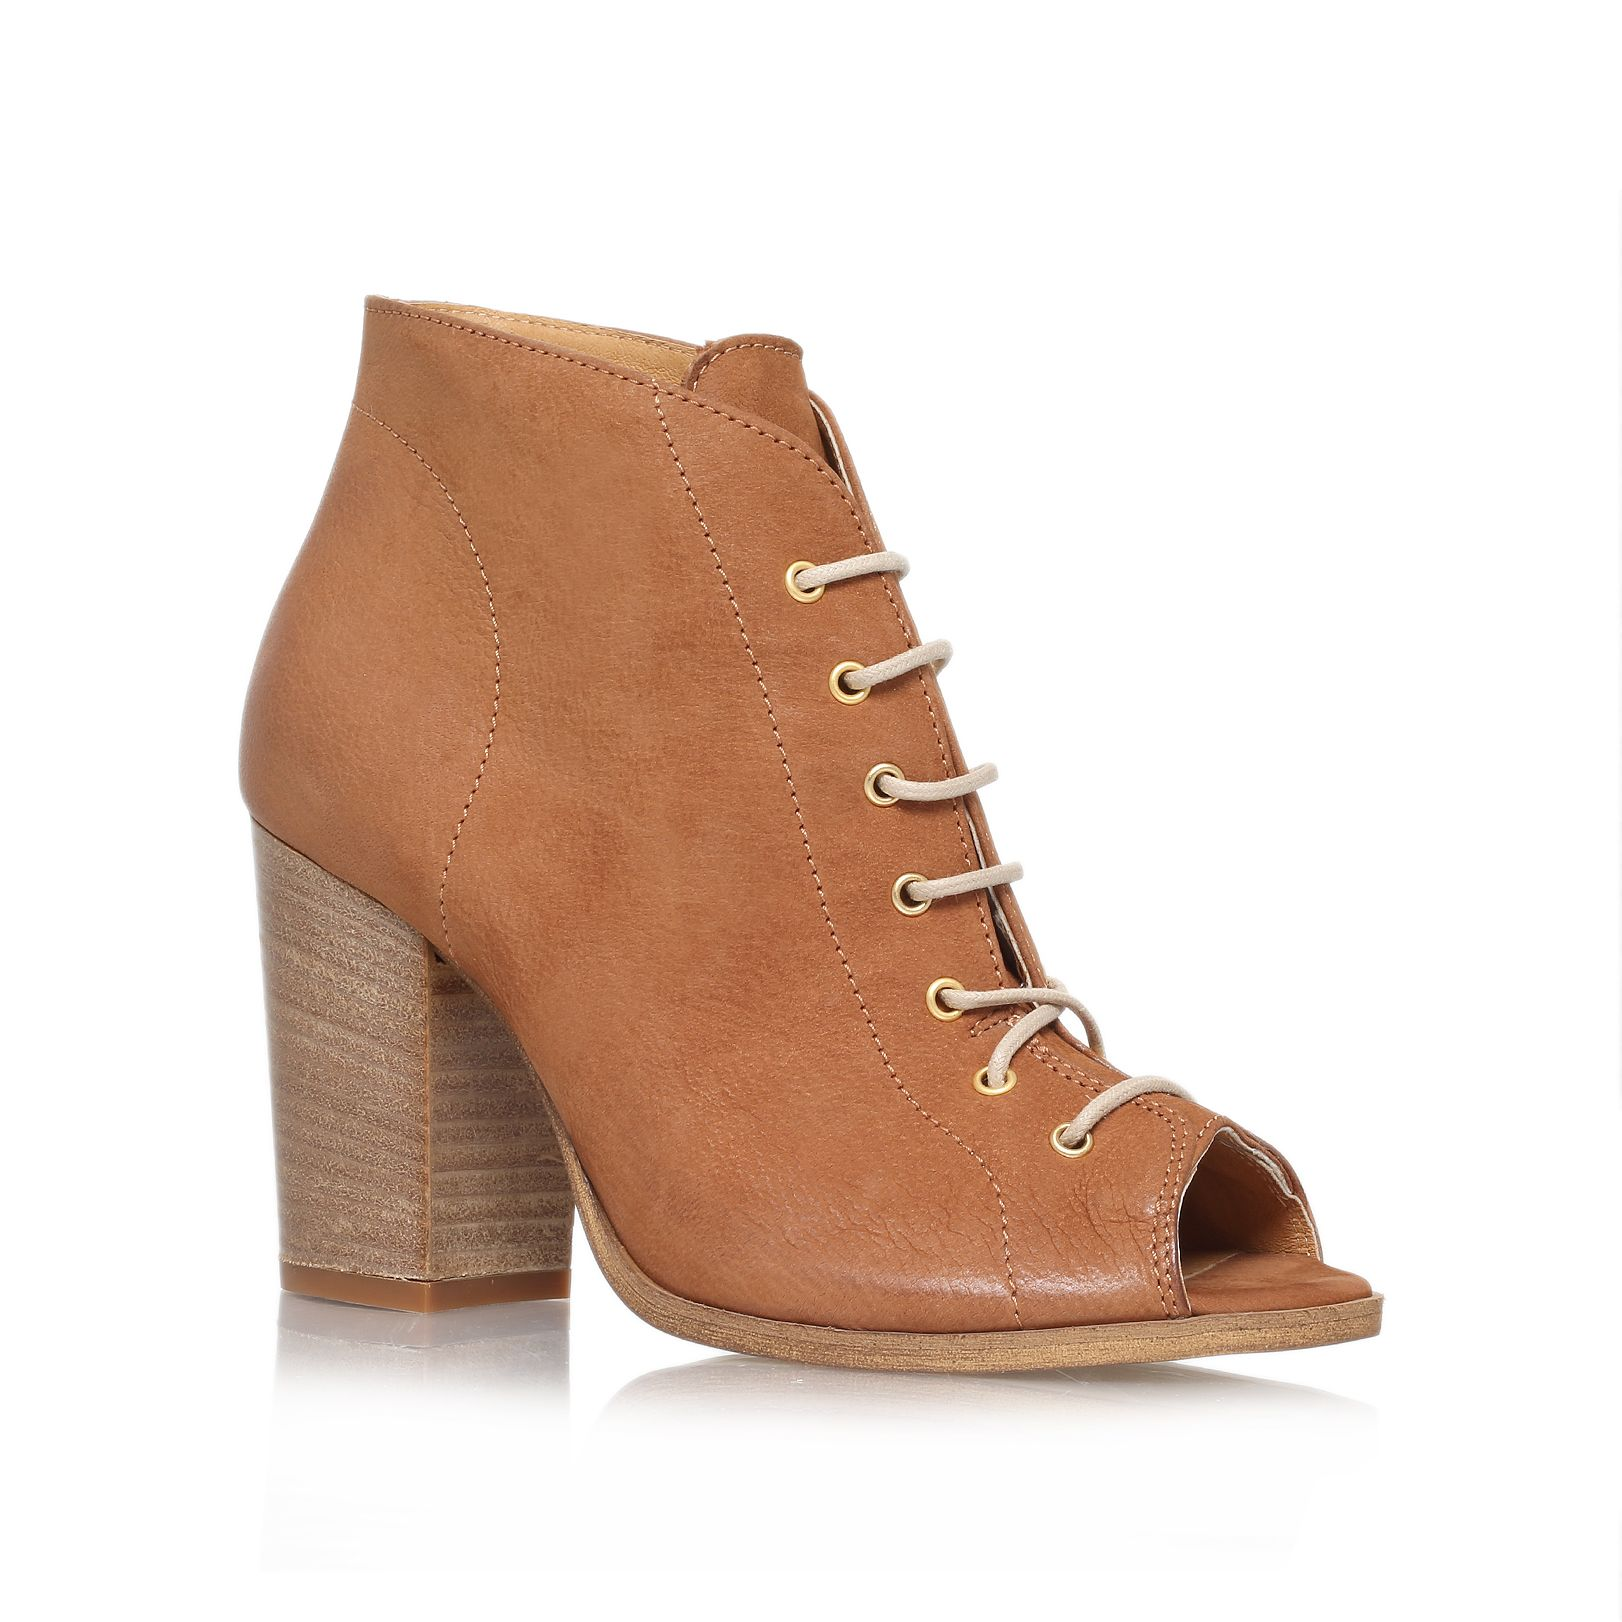 Selina high heel ankle boots